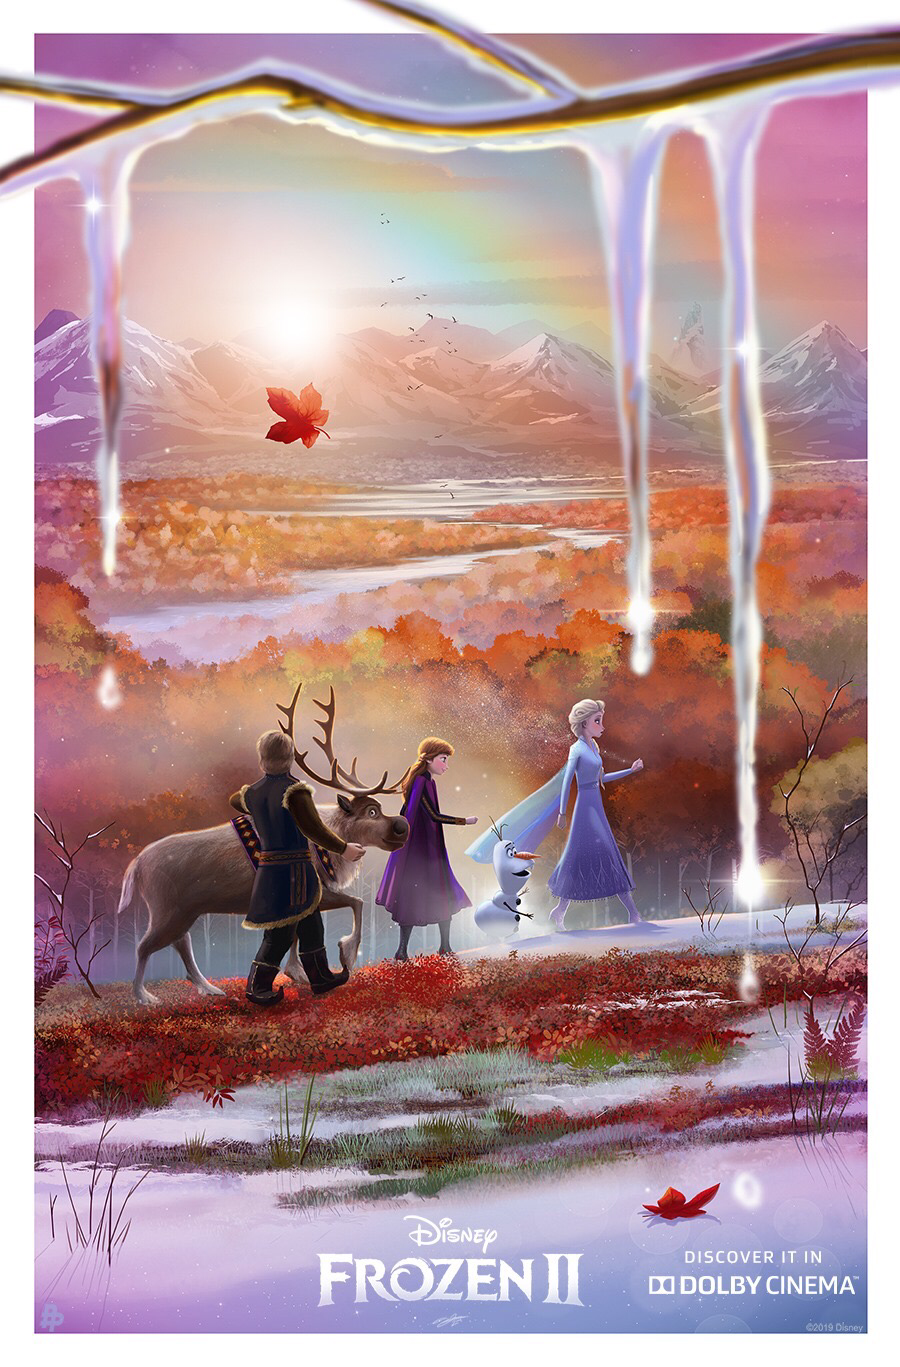 Frozen 2 Dolby Cinema exclusive poster